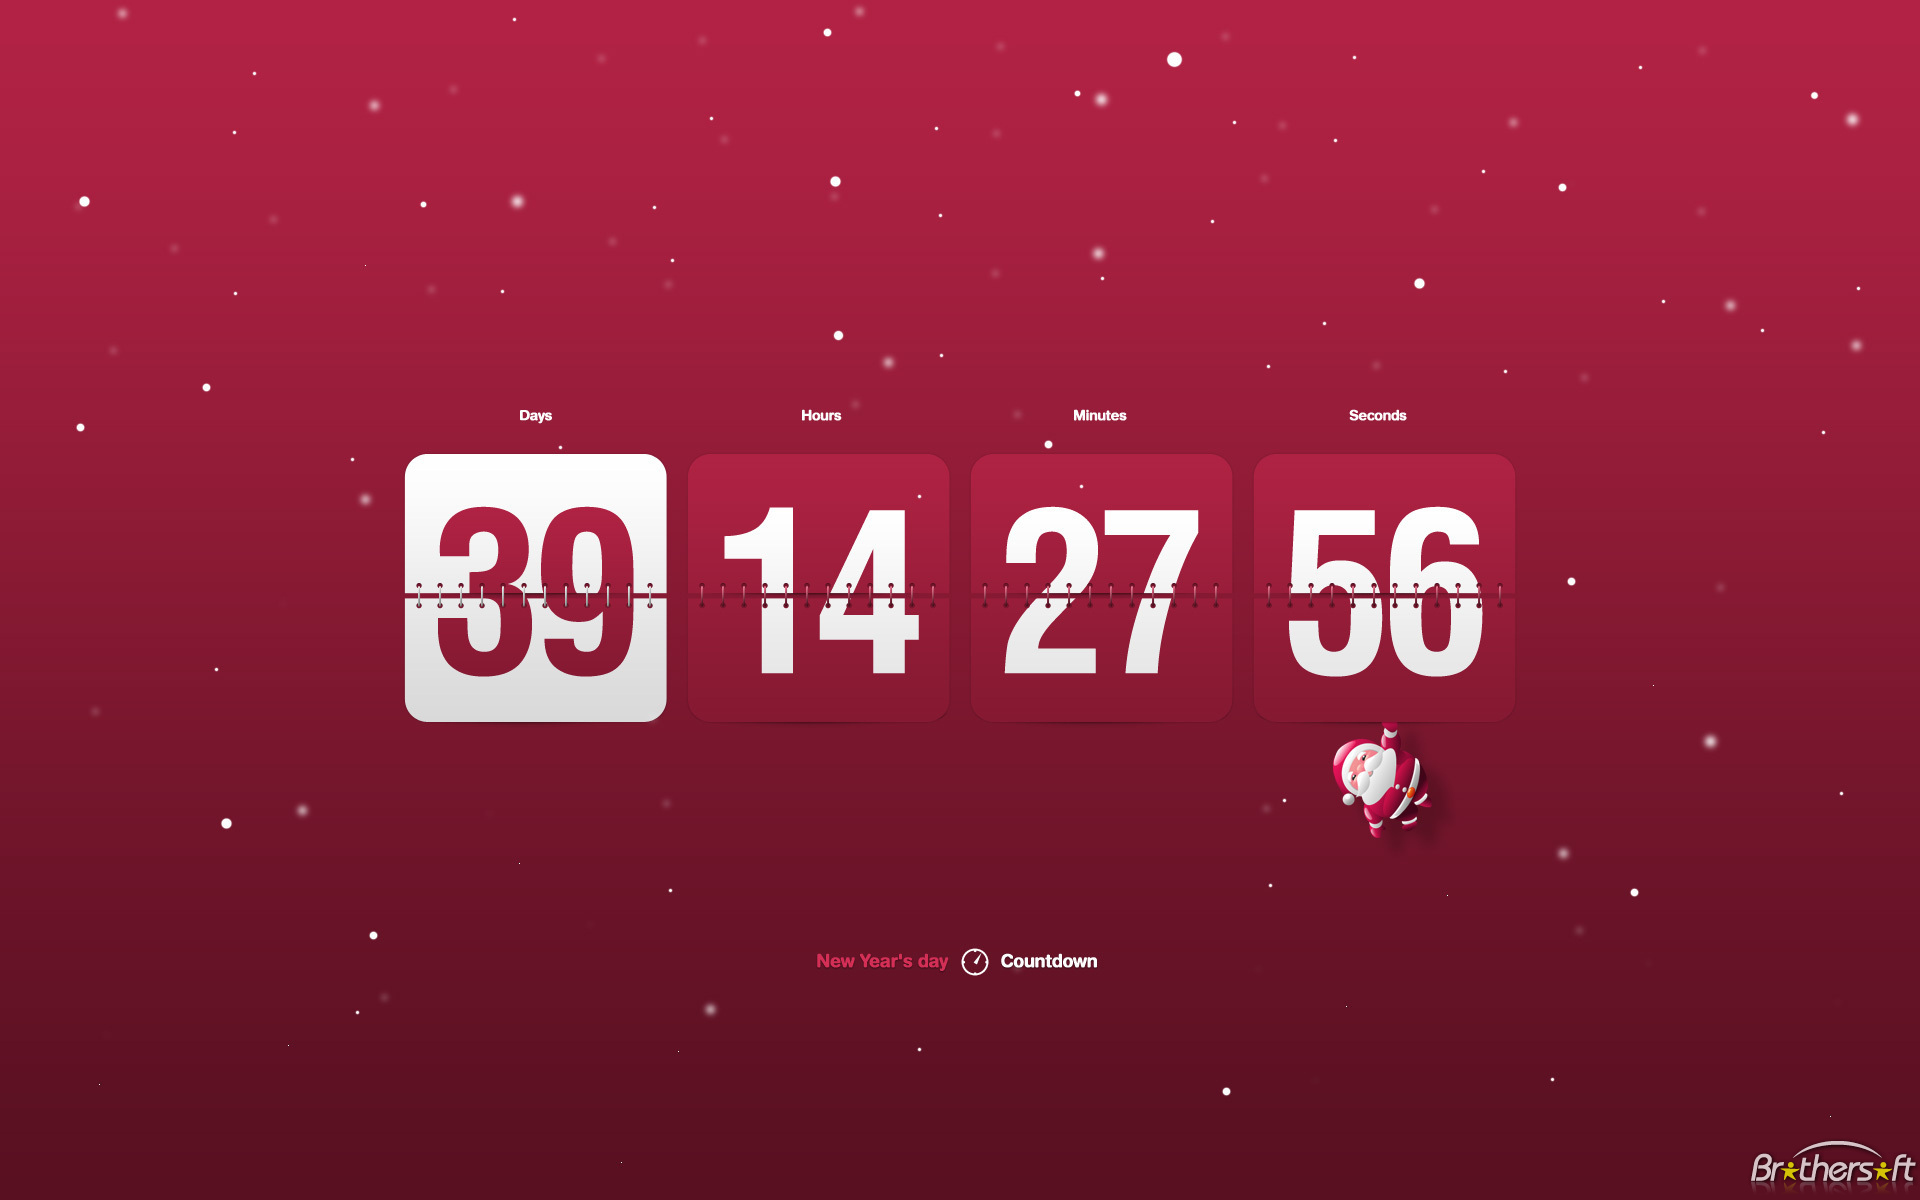 Countdown HD Wallpapers, 0.17 Mb, Flossie Josephson